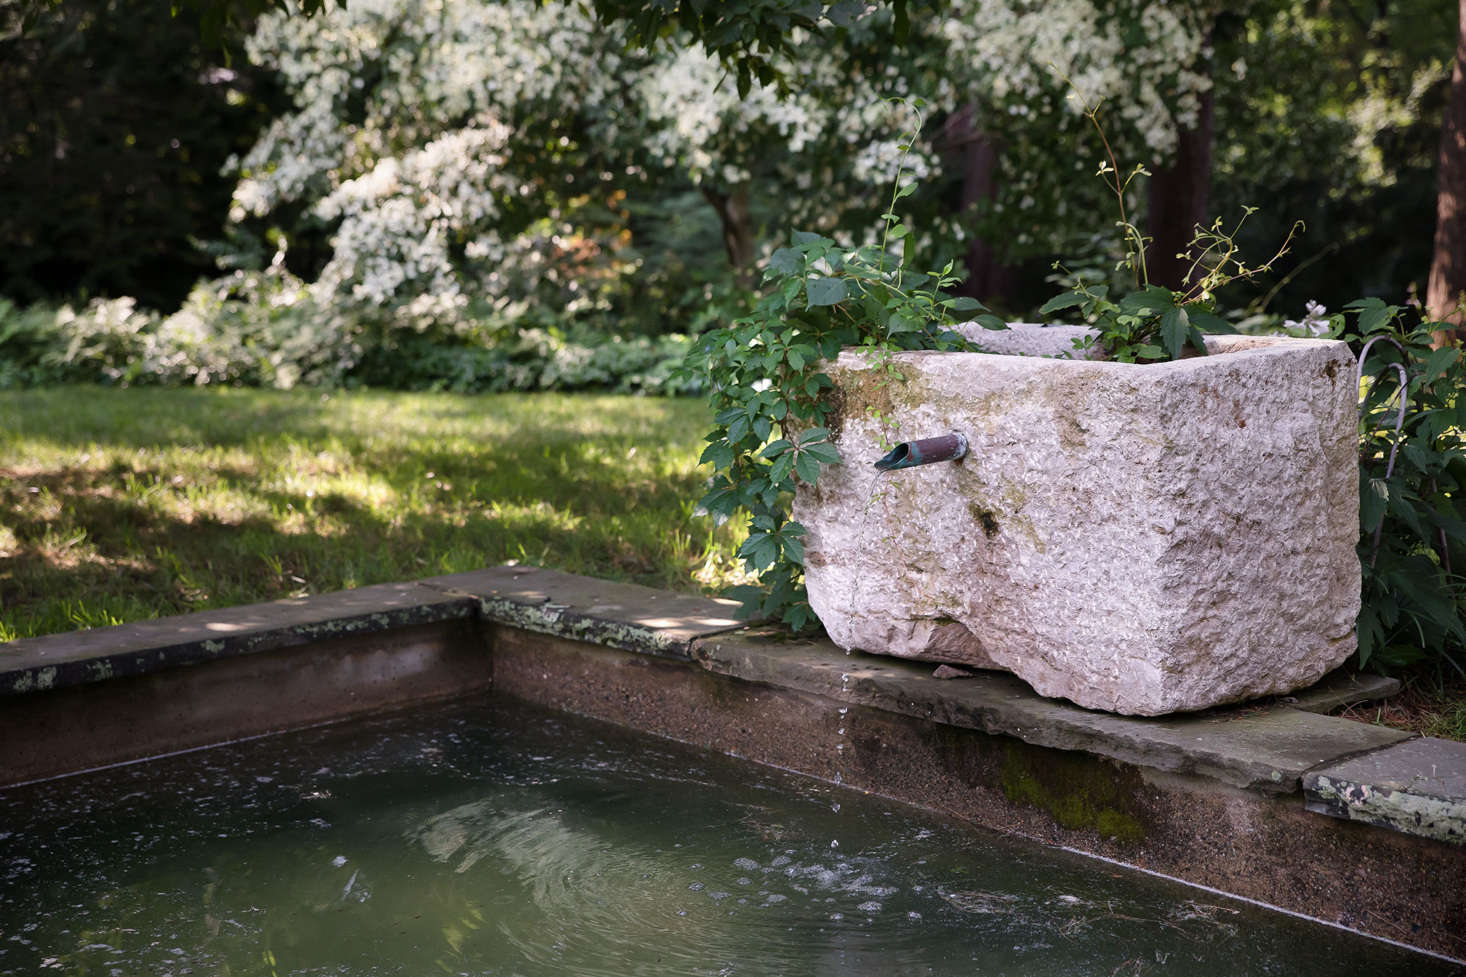 At one end of the pool, the original reflecting pool and fountain was restored and enhanced with an old limestone trough.